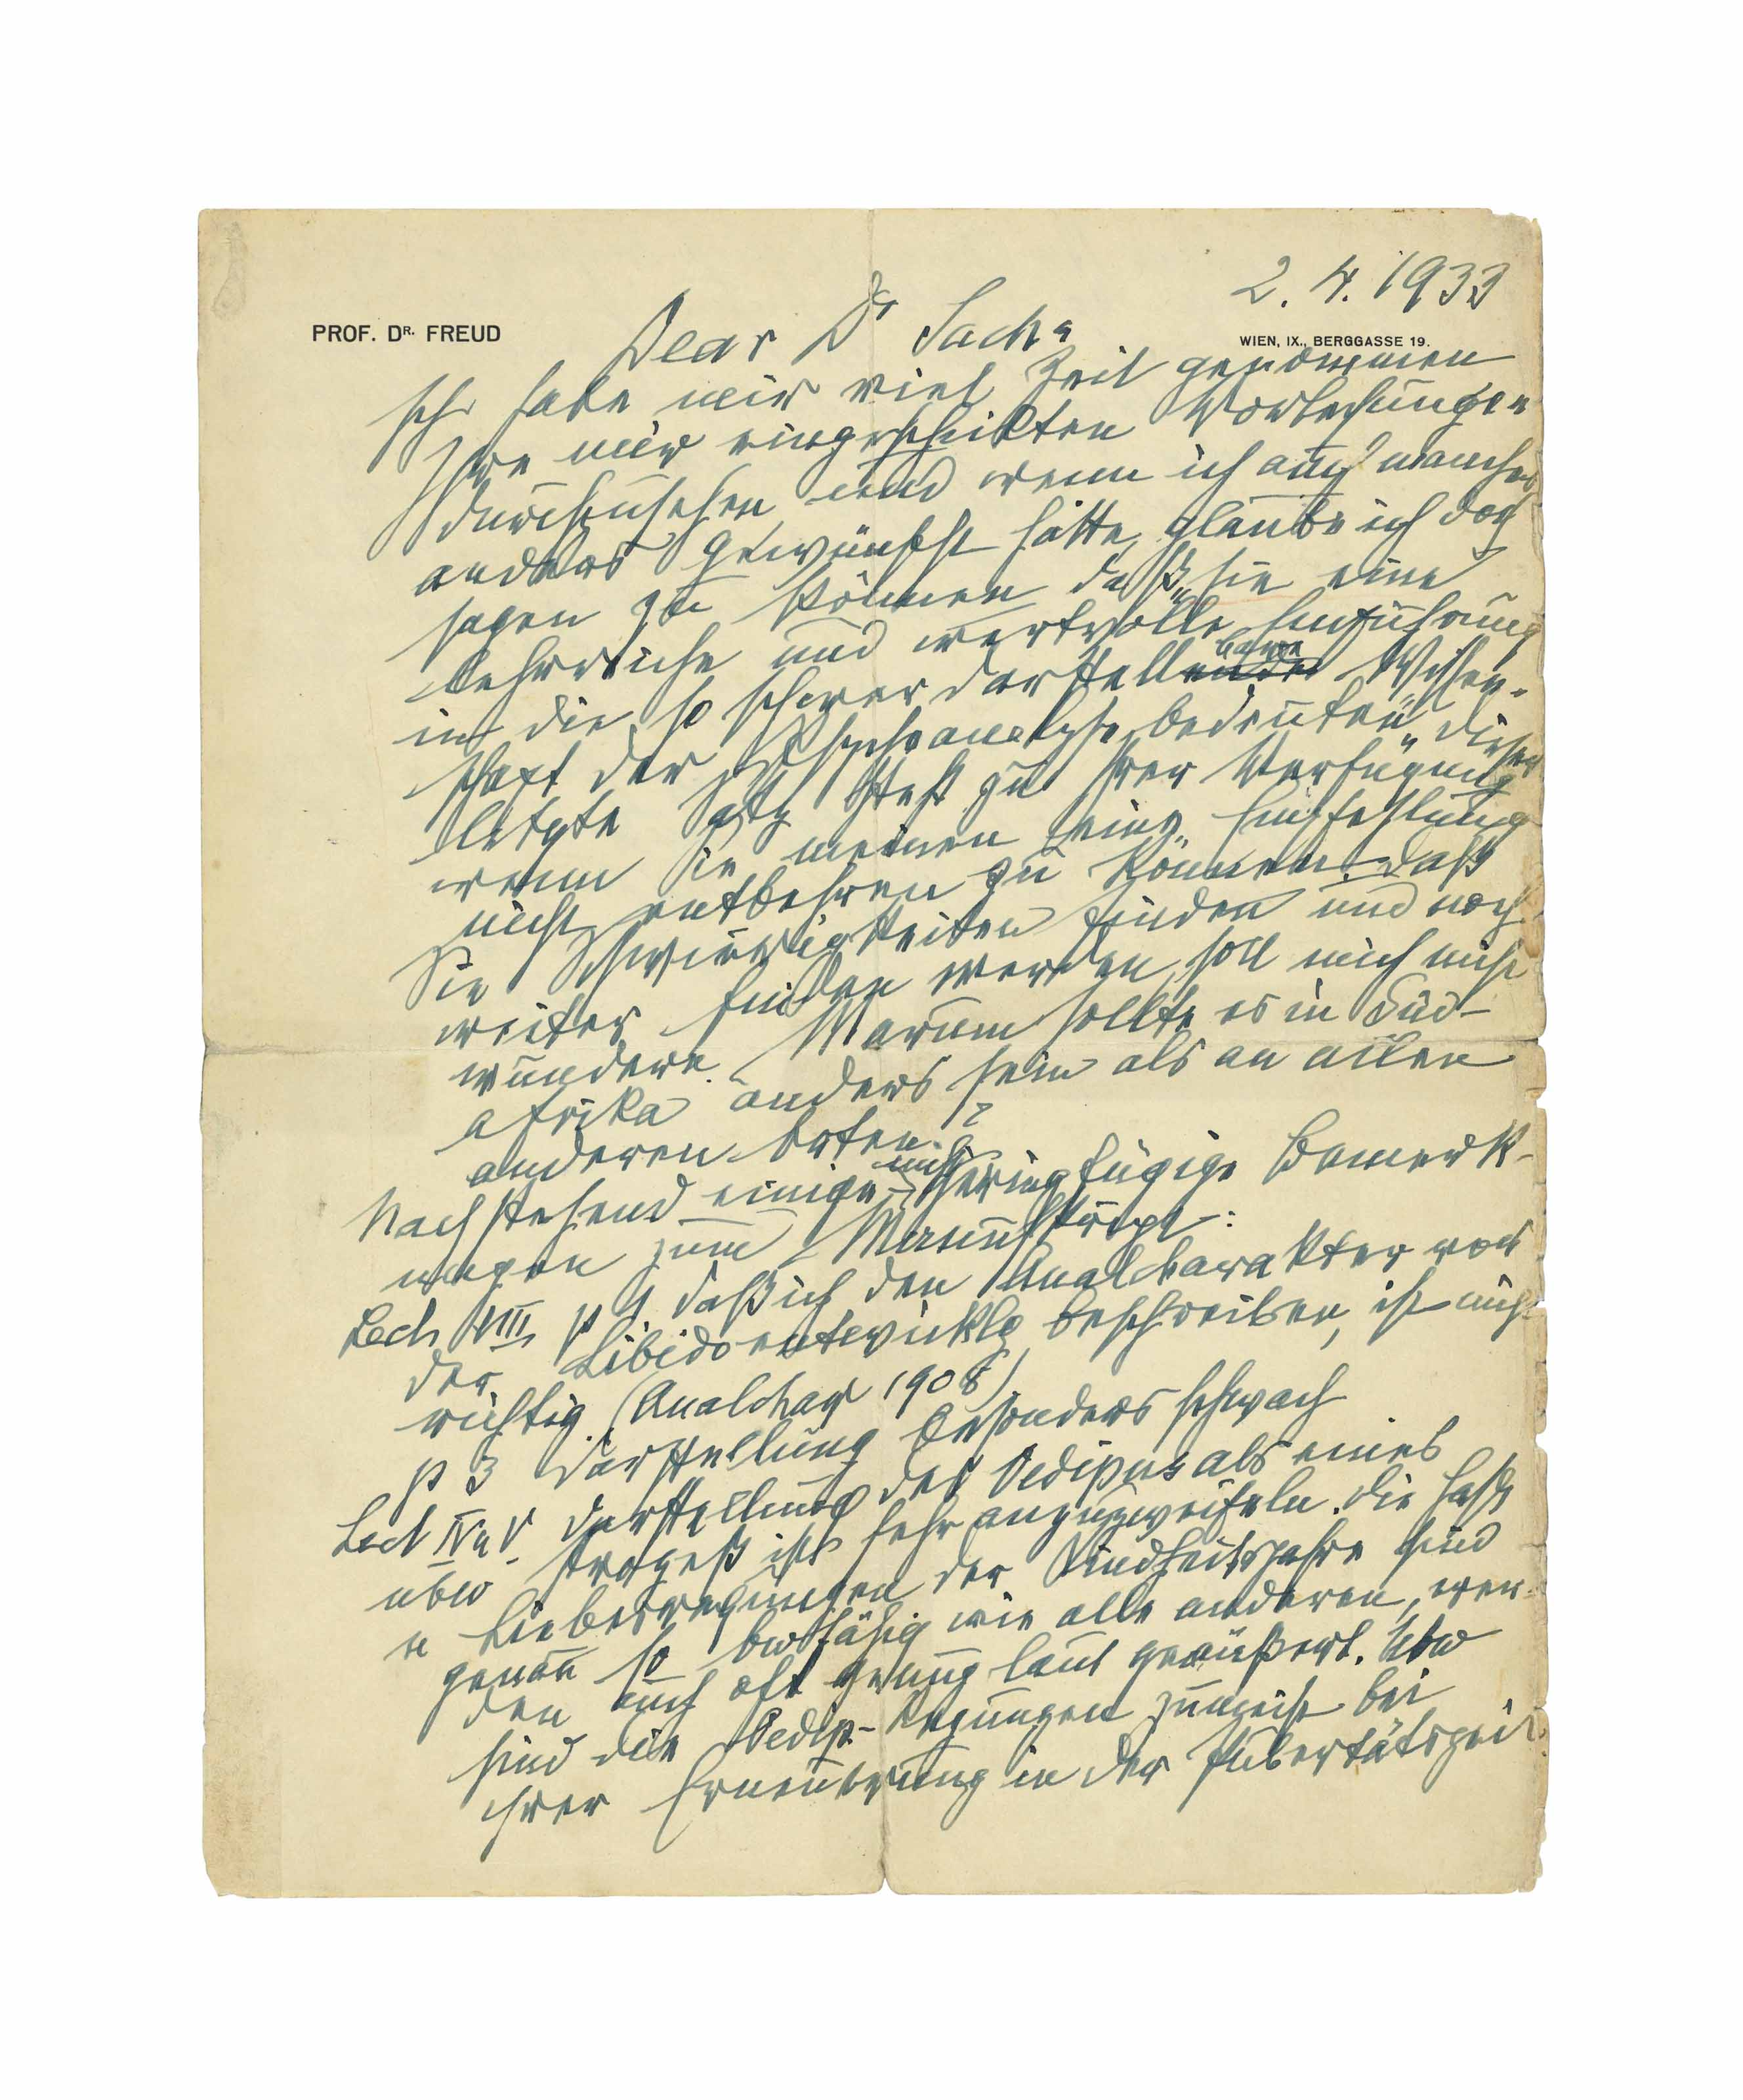 FREUD, Sigmund. Autograph letter signed ('Freud') to Dr [Wulf] Sachs, Berggasse 19, Vienna, 2 April 1933.